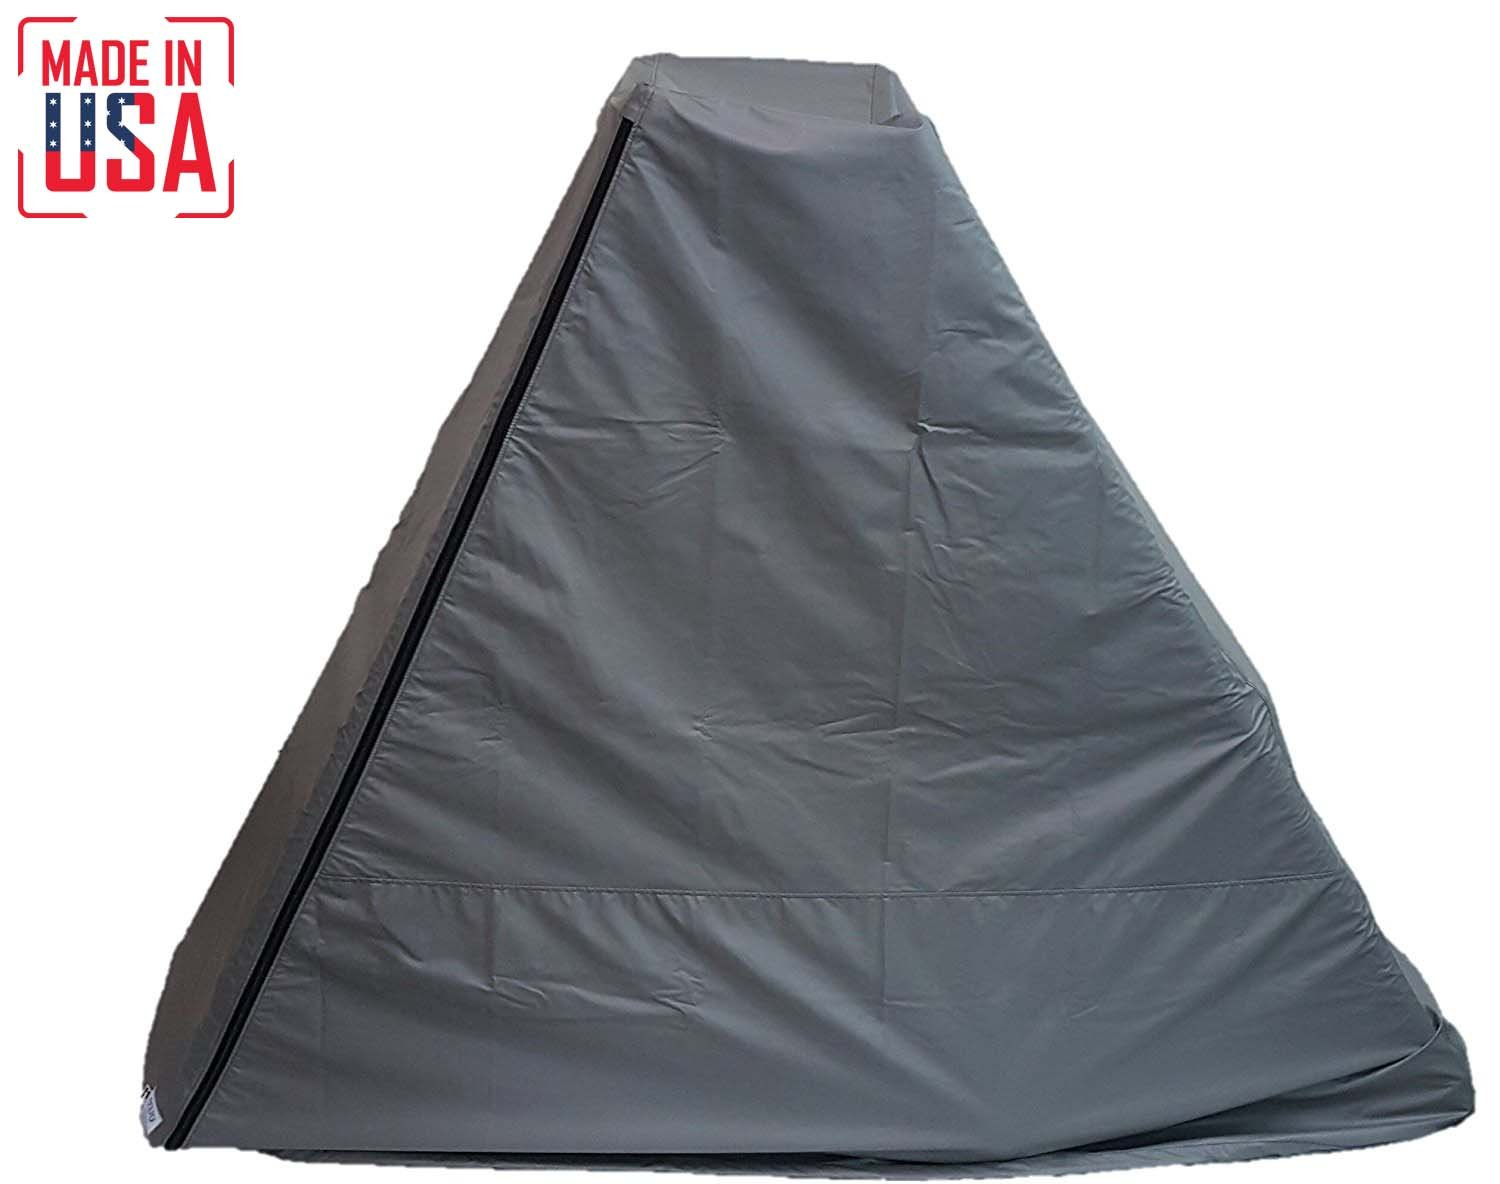 The Best Elliptical Machine Cover | Front Drive. Heavy Duty Fitness Equipment Protective Covers Ideal for Indoor or Outdoor Use. Made in USA with 3-Year Warranty. (Grey, Small Extra Tall)